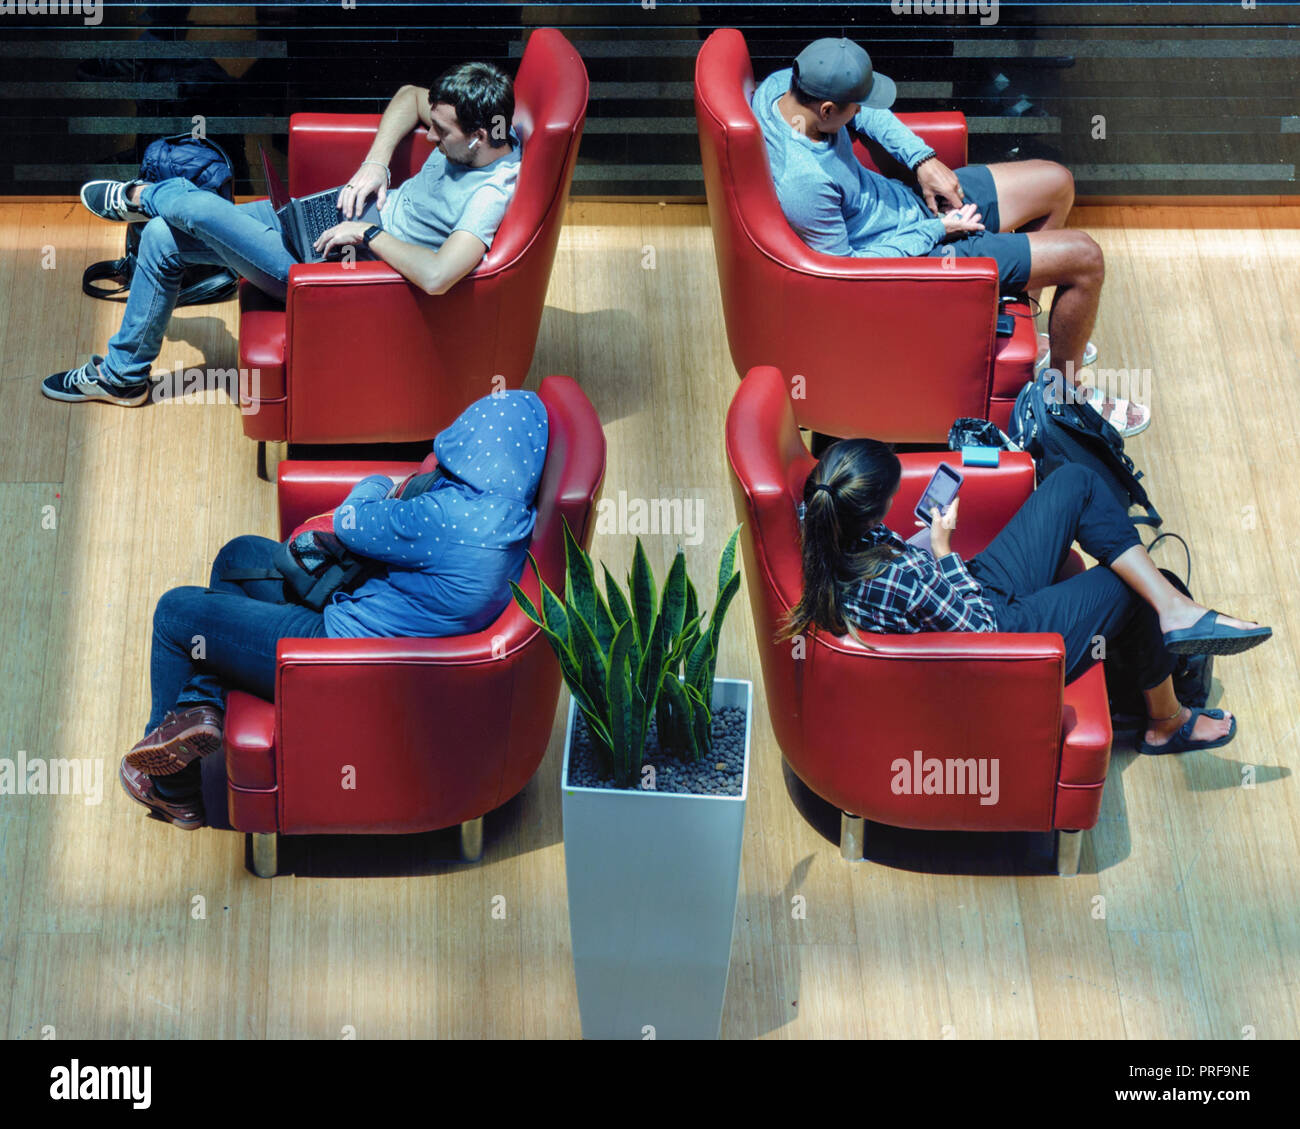 Top view of separate people, everyone does not pay attention to each other. Isolation, alienation, Introvert. Airport waiting room with armchairs. - Stock Image